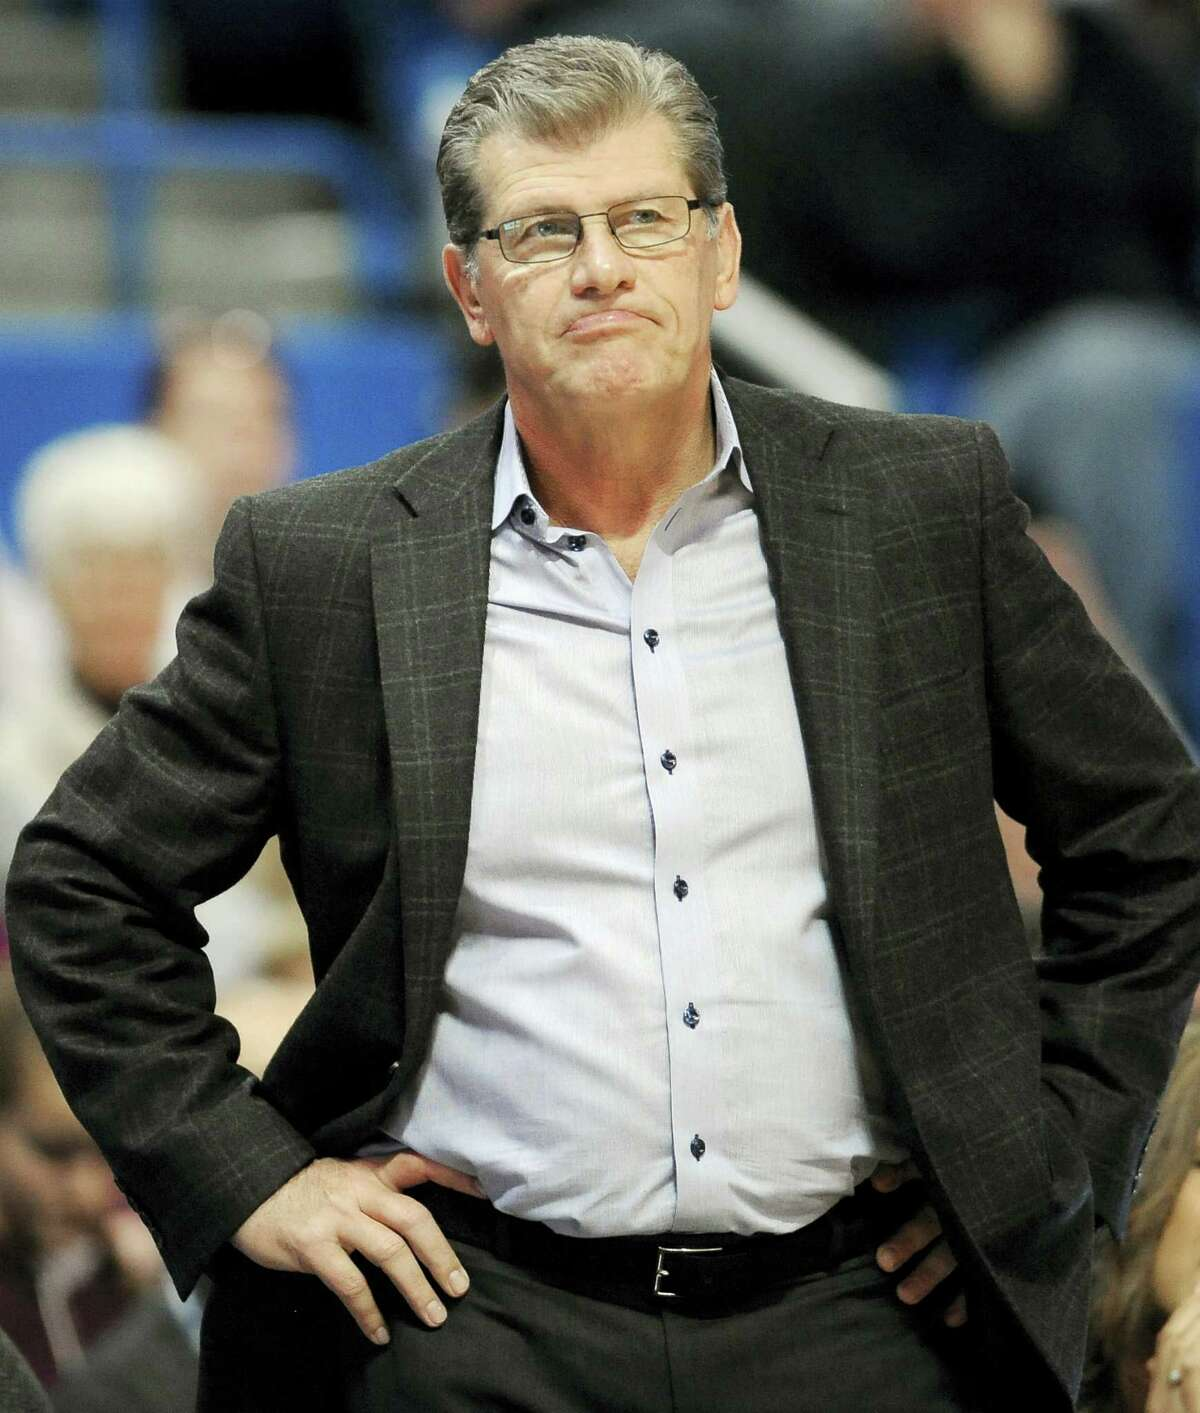 UConn women's basketball coach Geno Auriemma watches the second half against Chattanooga Tuesday night.